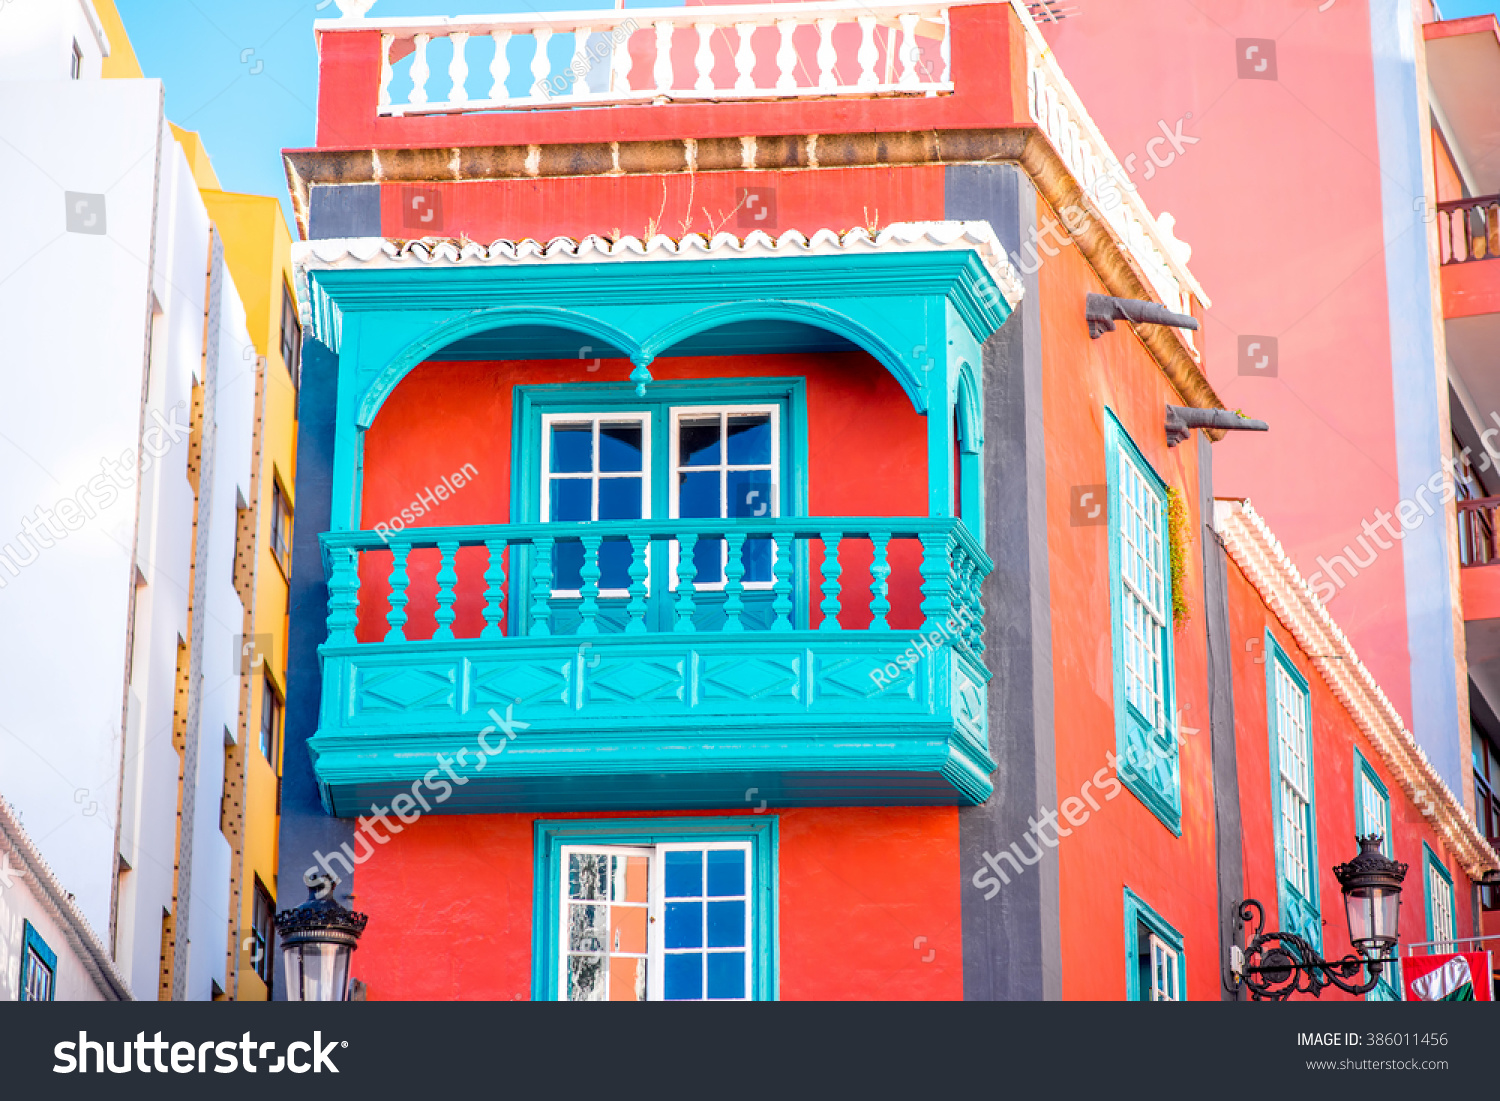 Santa Cruz Colored Houses With Royalty Free Colorful House Beautiful Balcony 386011456 Stock